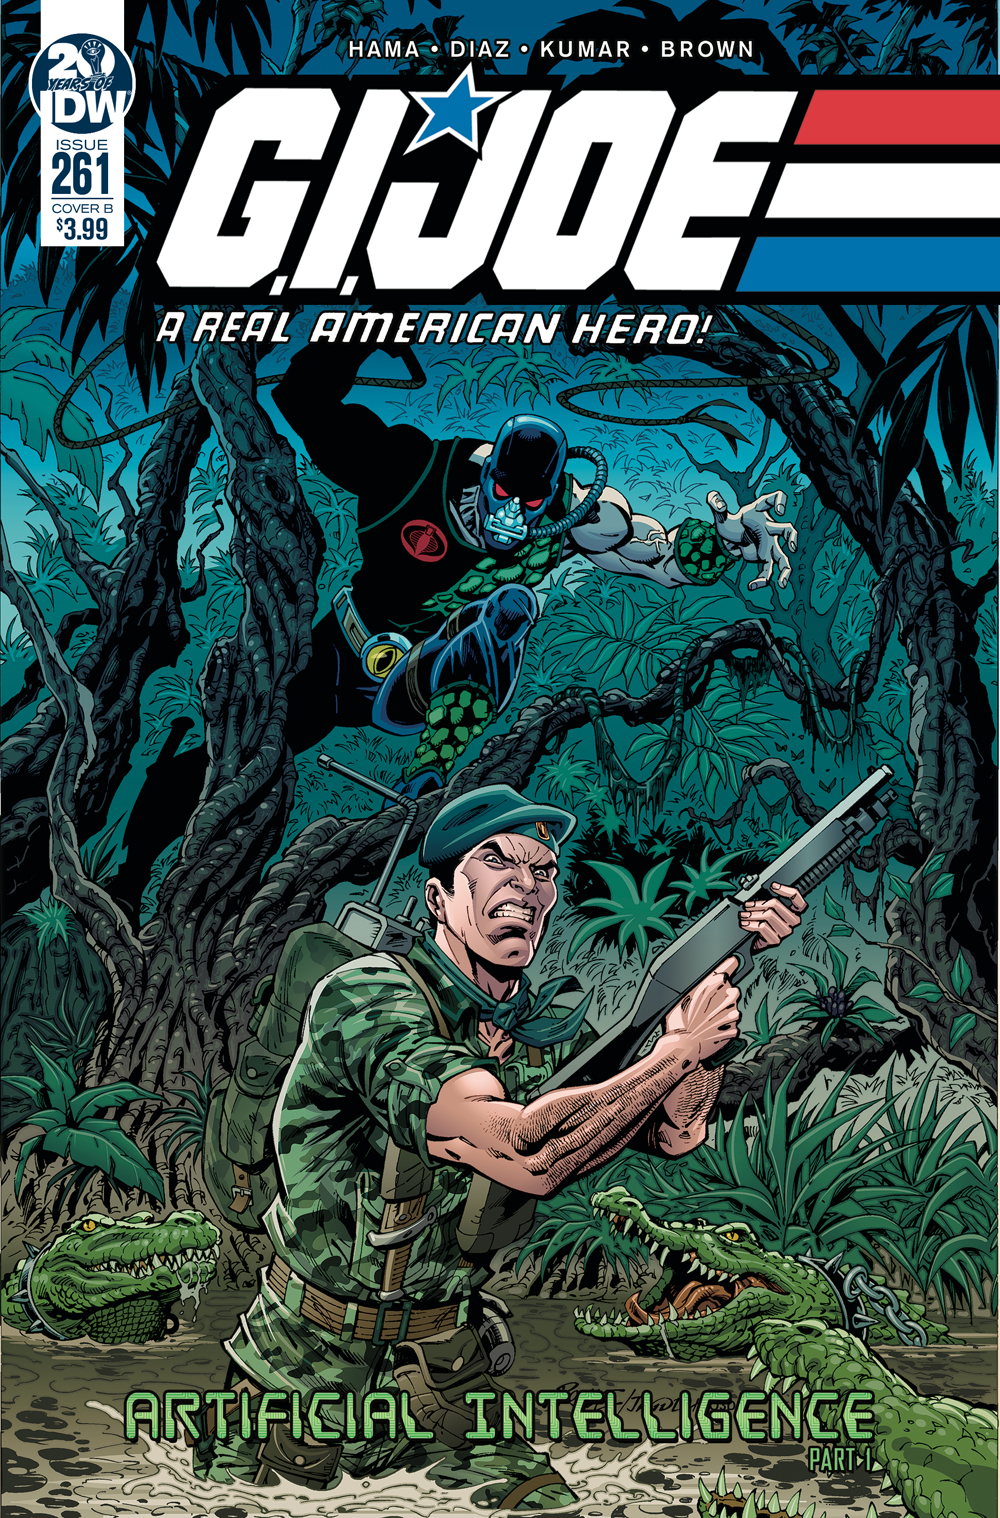 GI JOE A REAL AMERICAN HERO #261 CVR B ROYLE